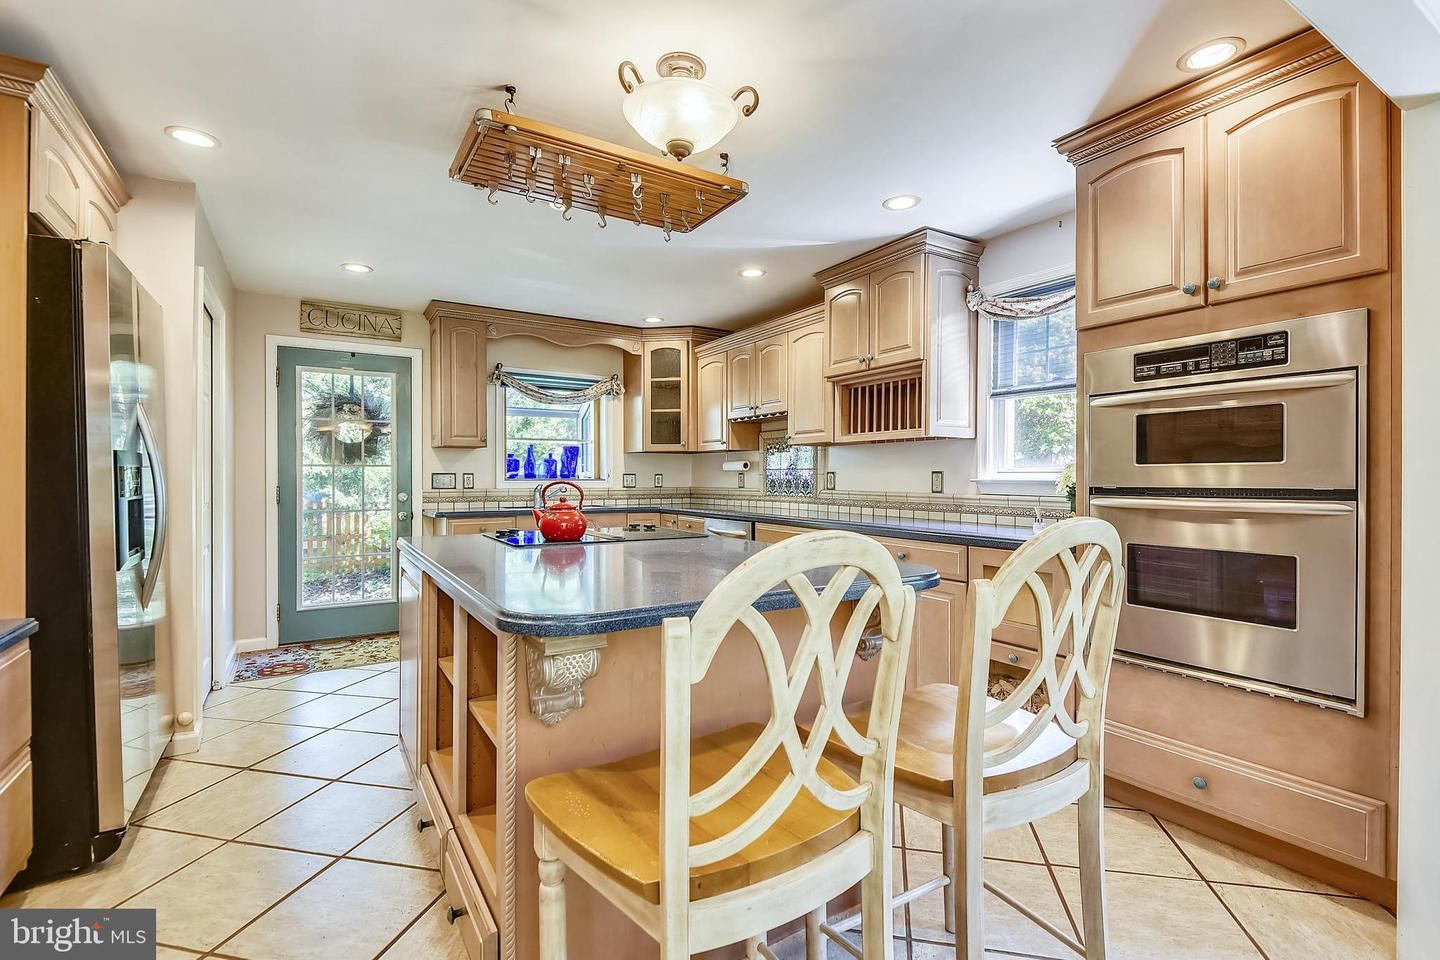 Property Image Of 1127 Short St In Annapolis, Md